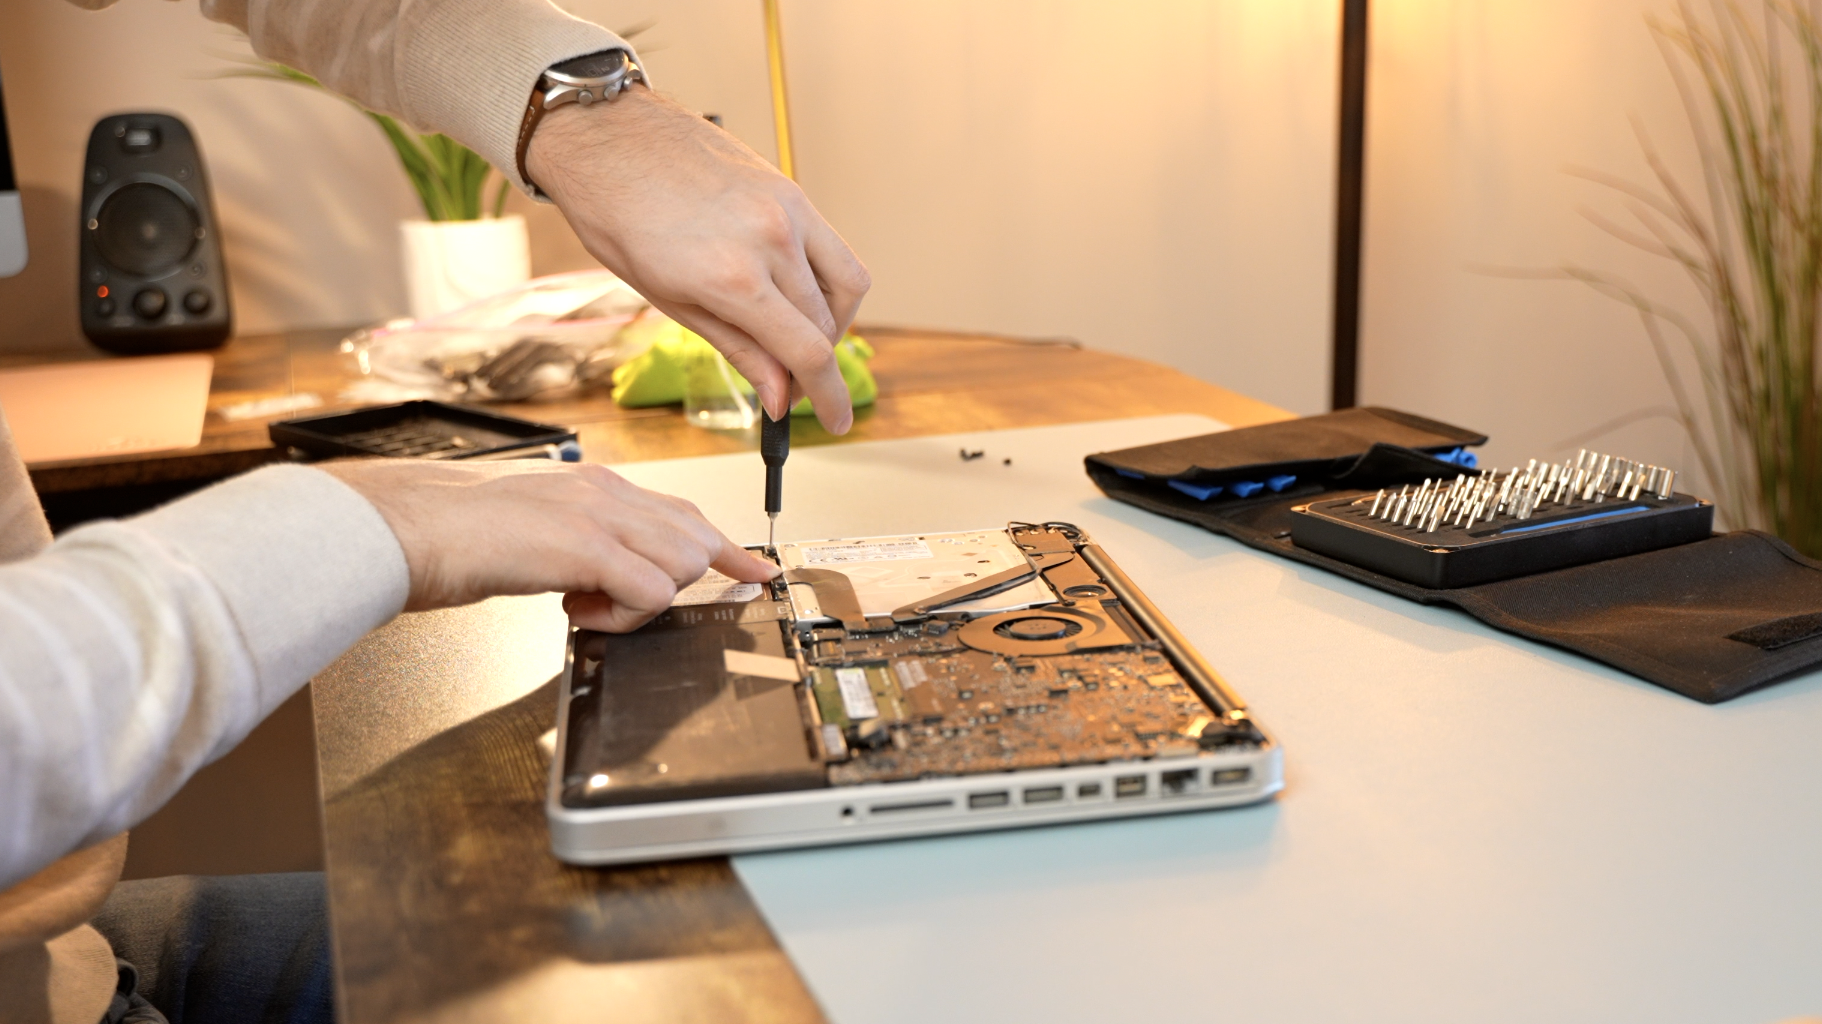 Using a screwdriver on a disassembled MacBook